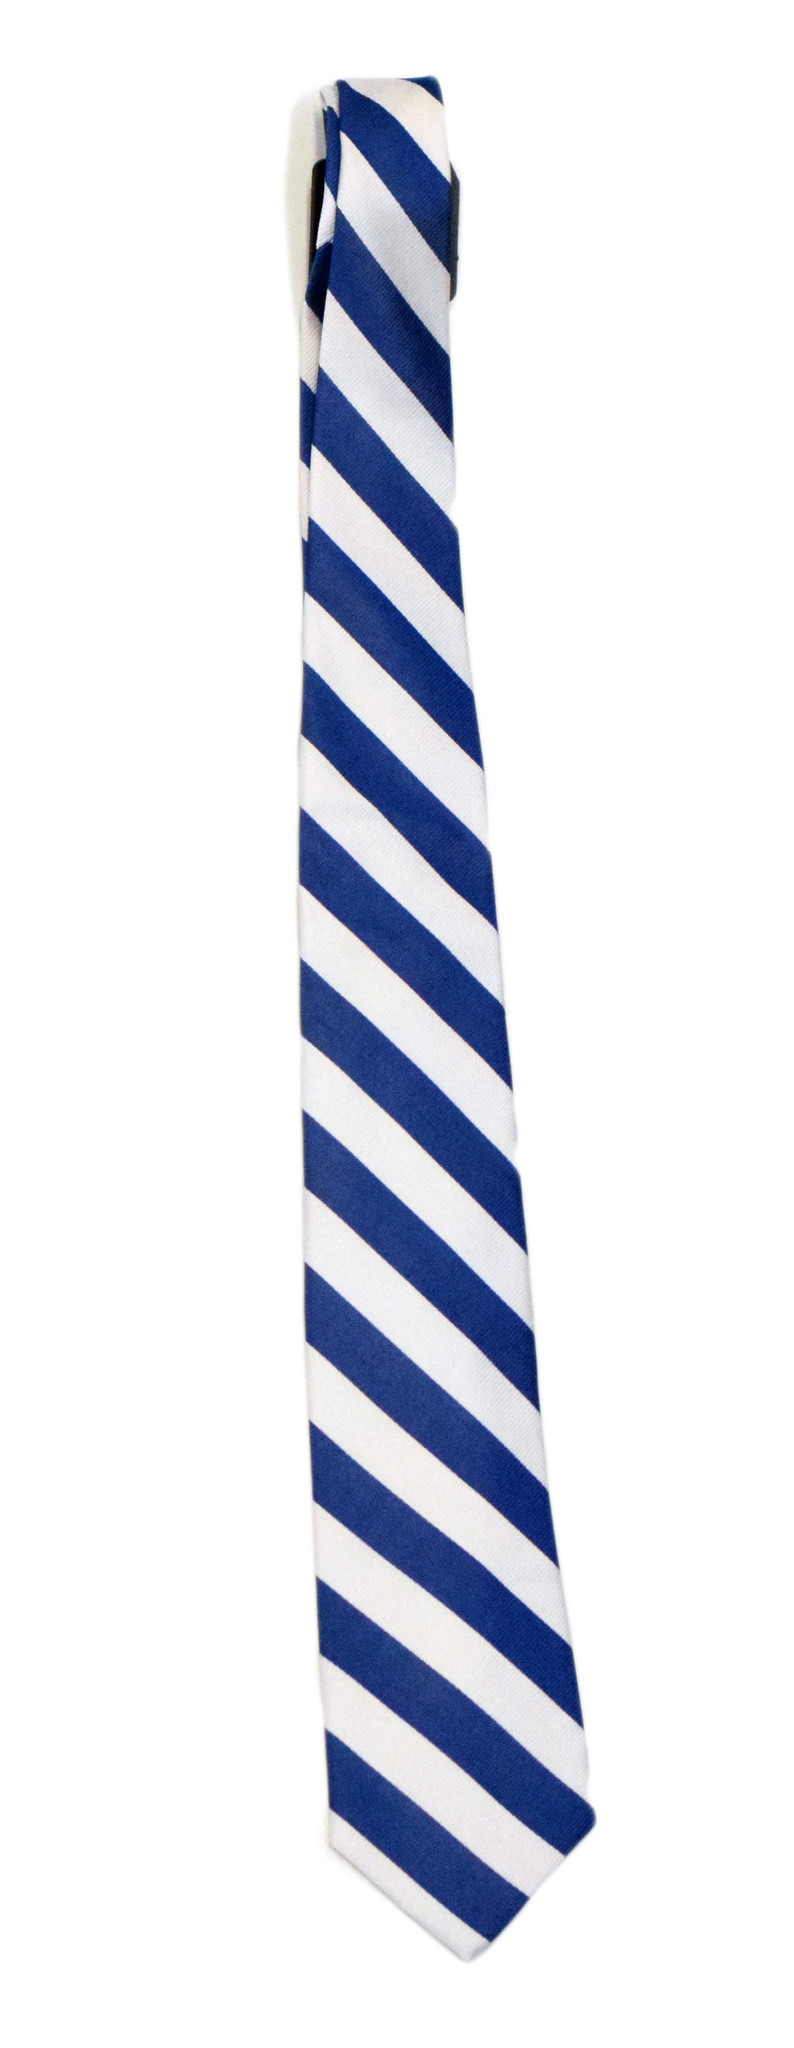 Blue and White Striped Tie-1